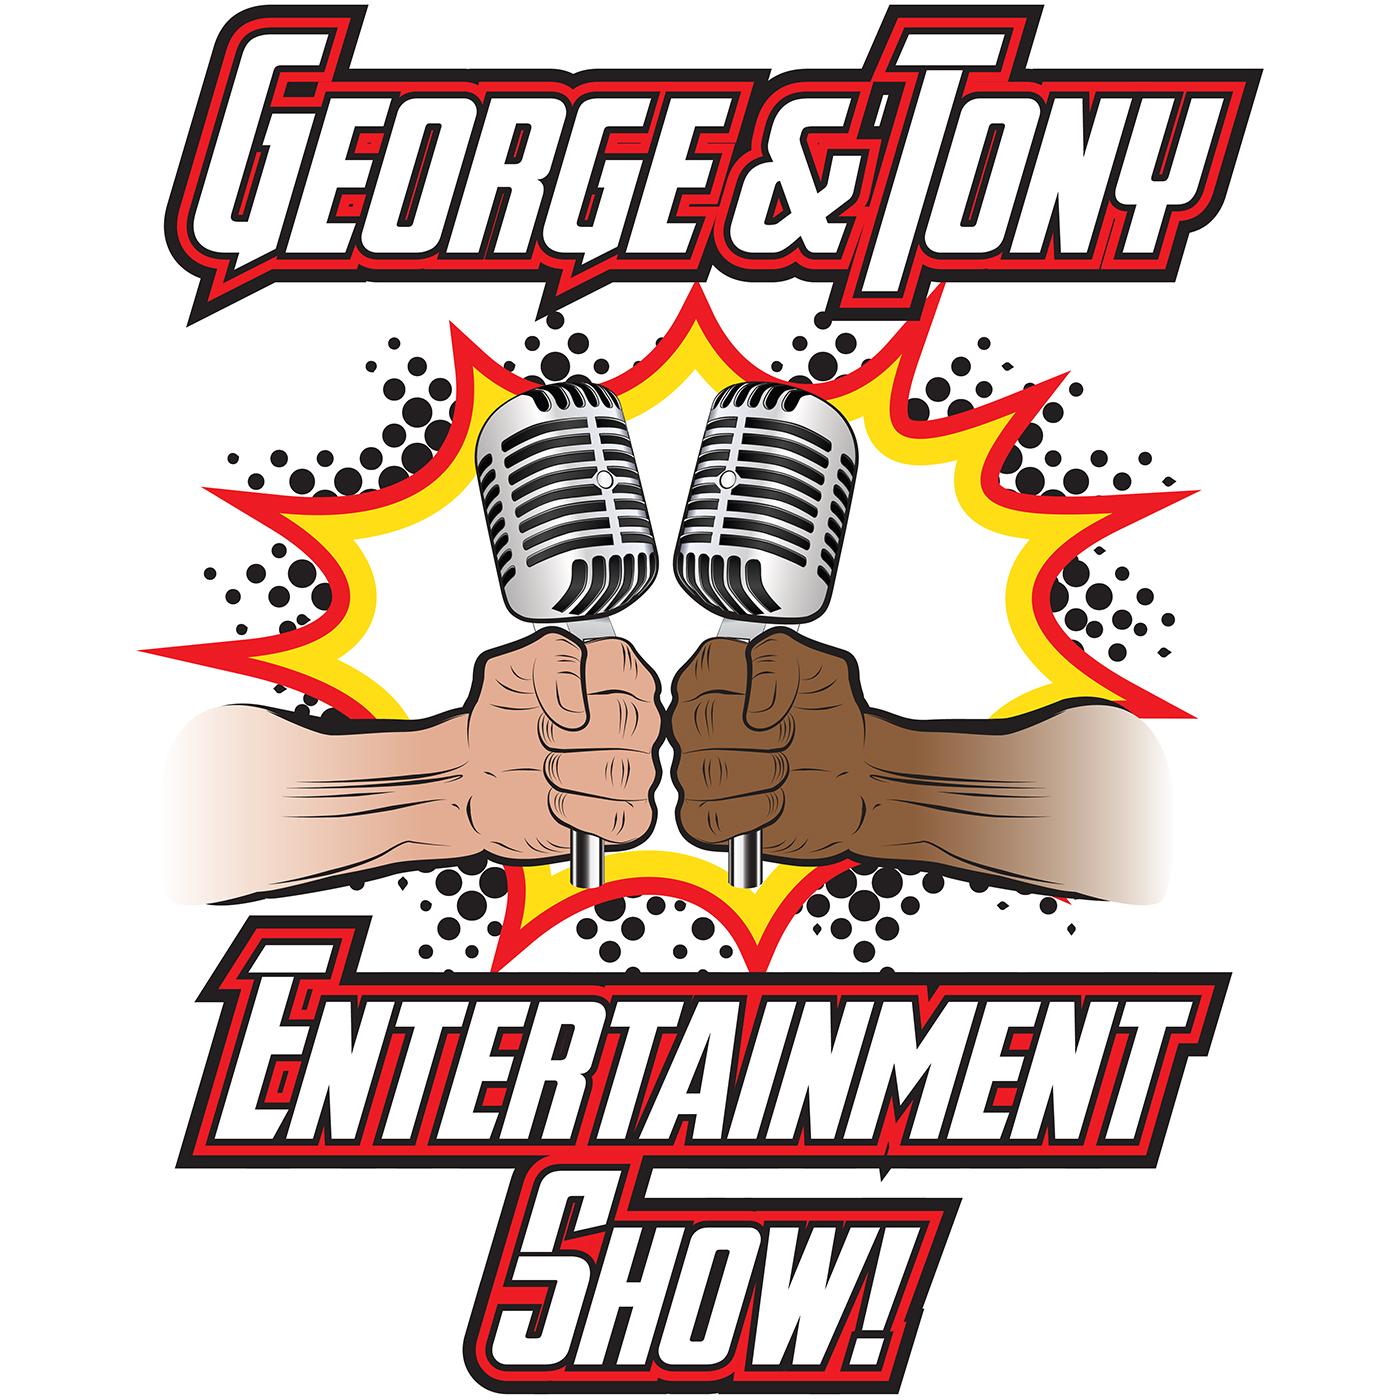 George and Tony Entertainment Show #3